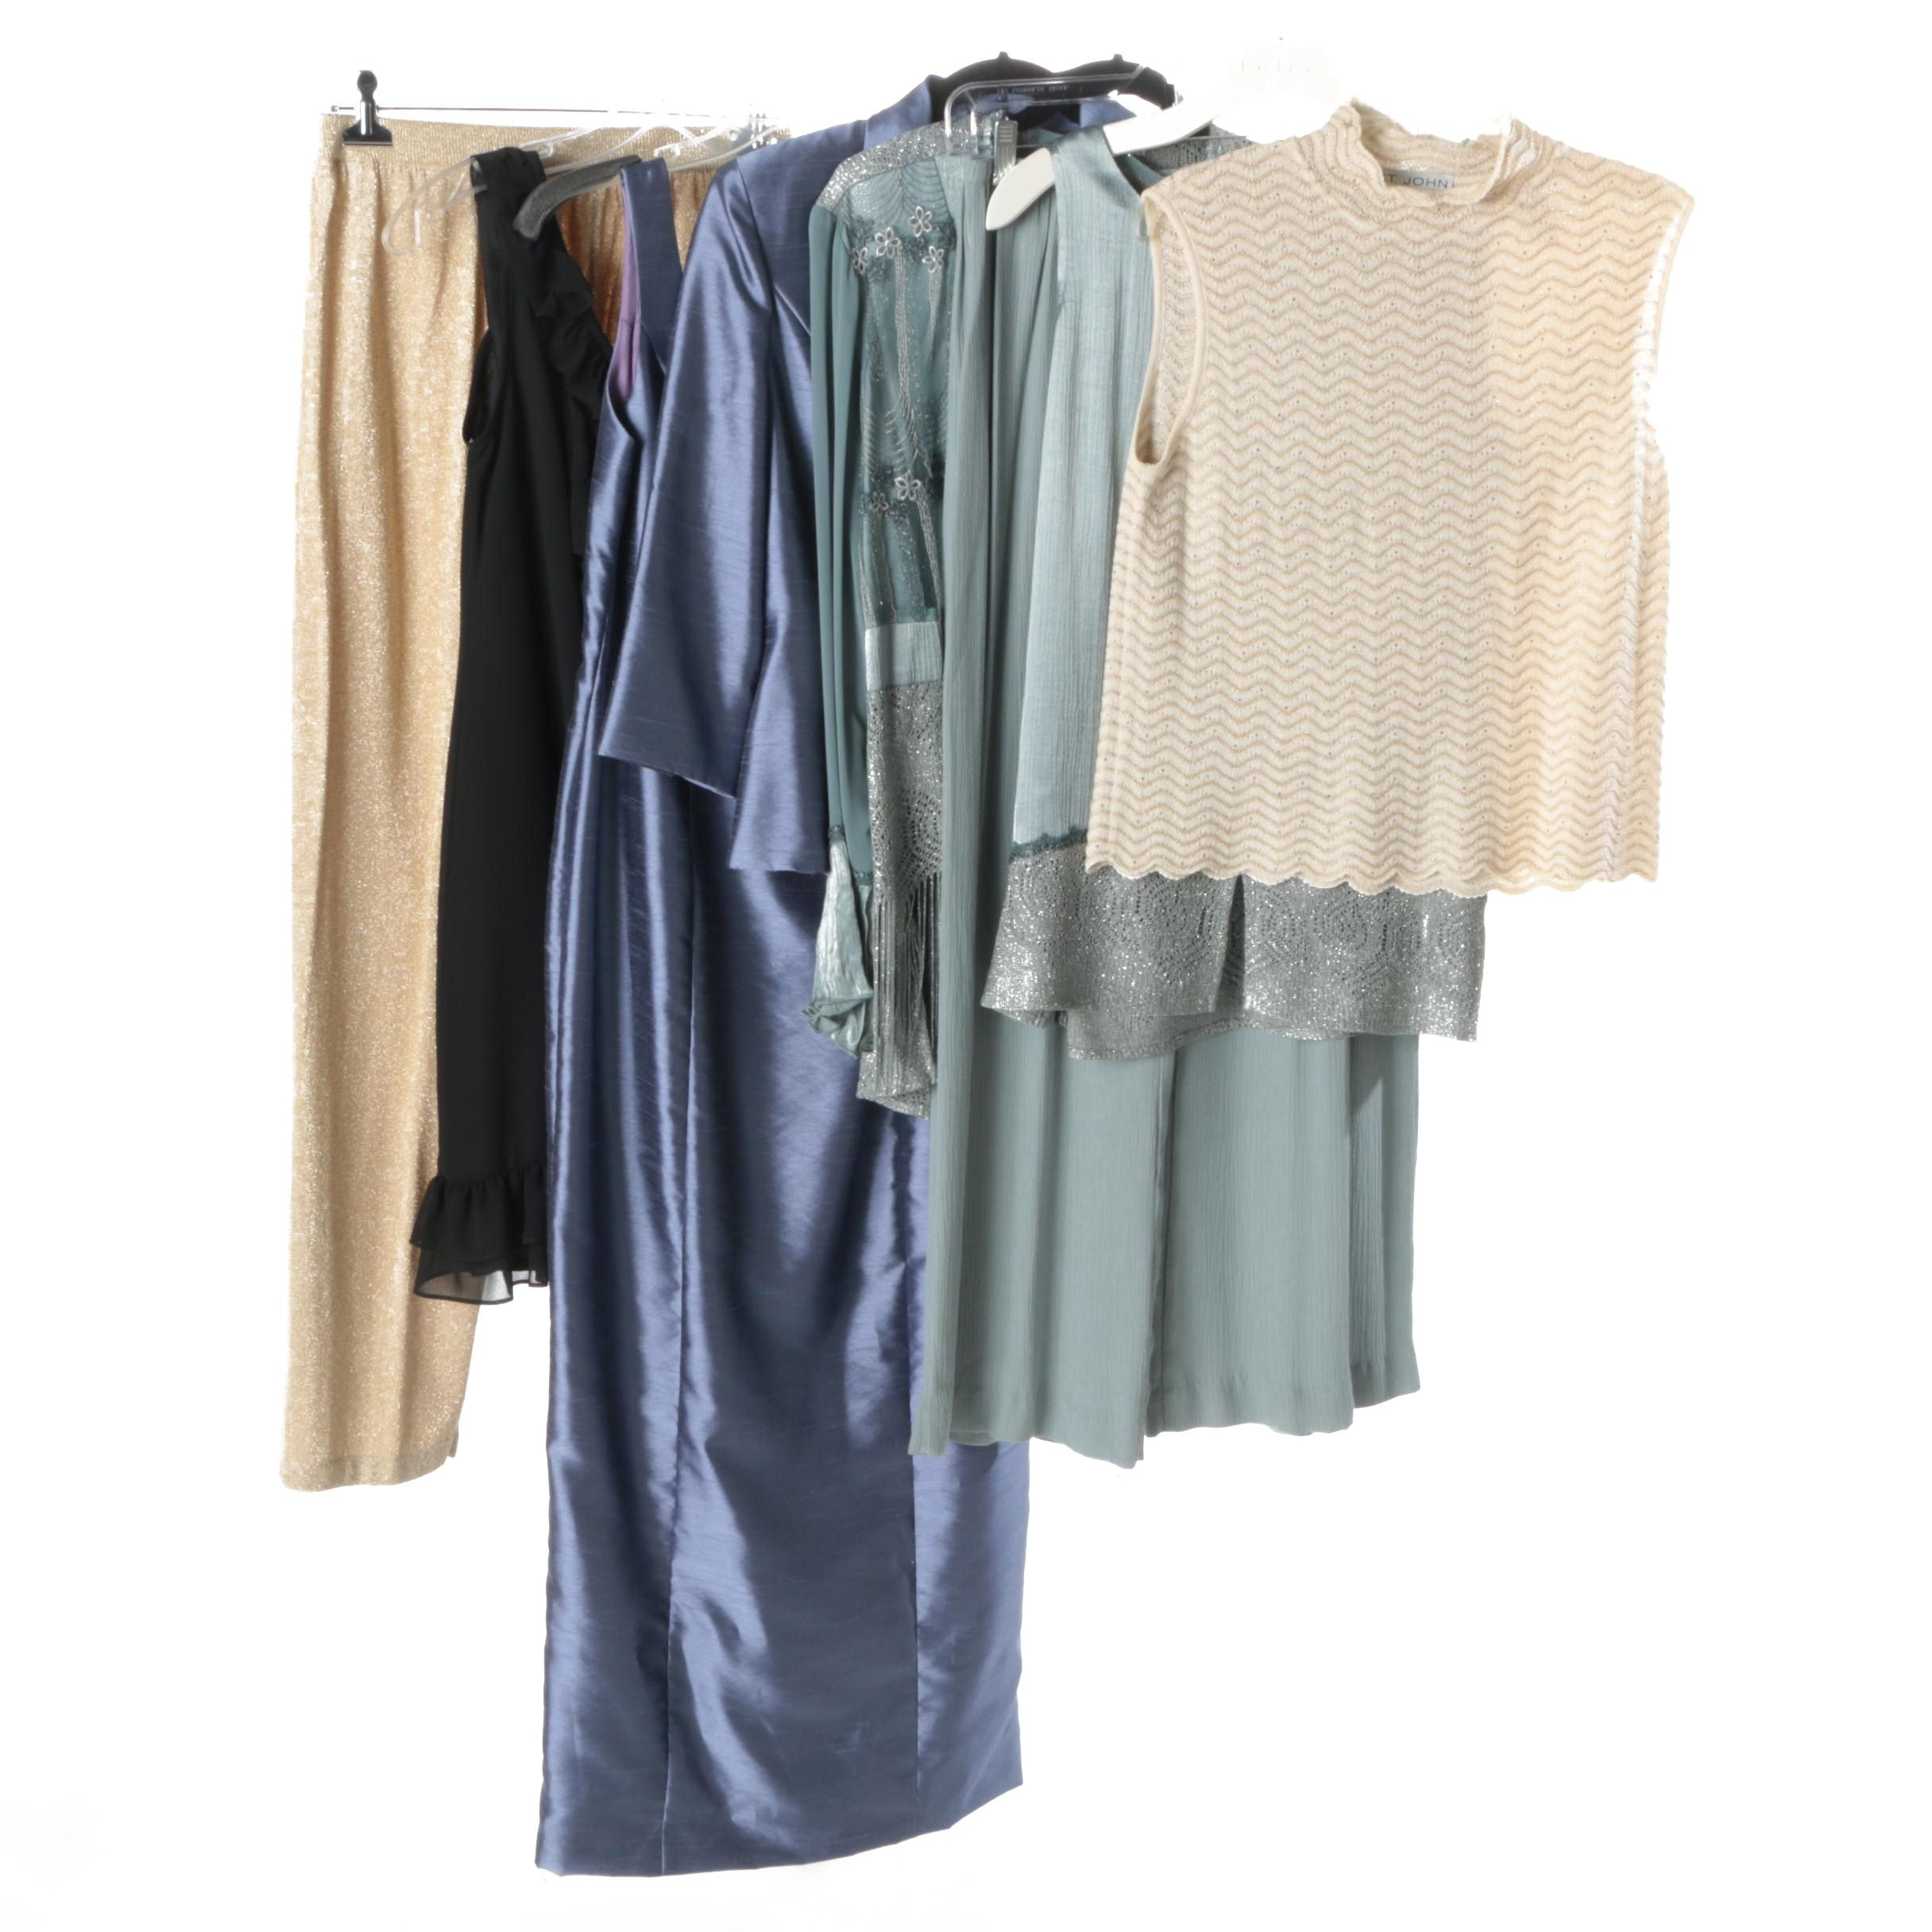 Women's Separates Including St. John